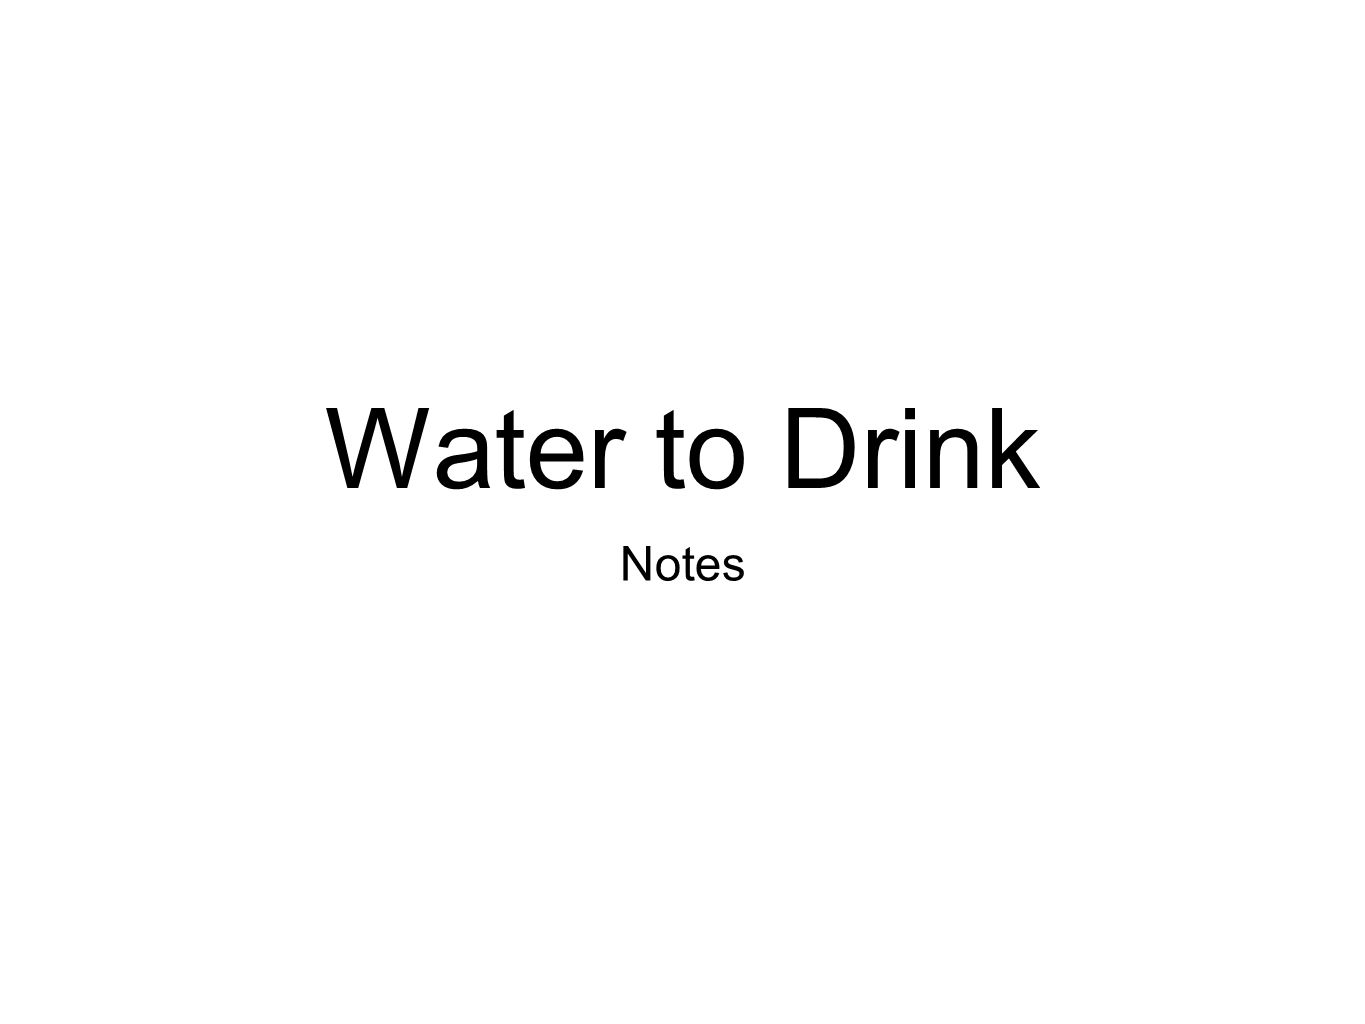 Water to Drink Notes